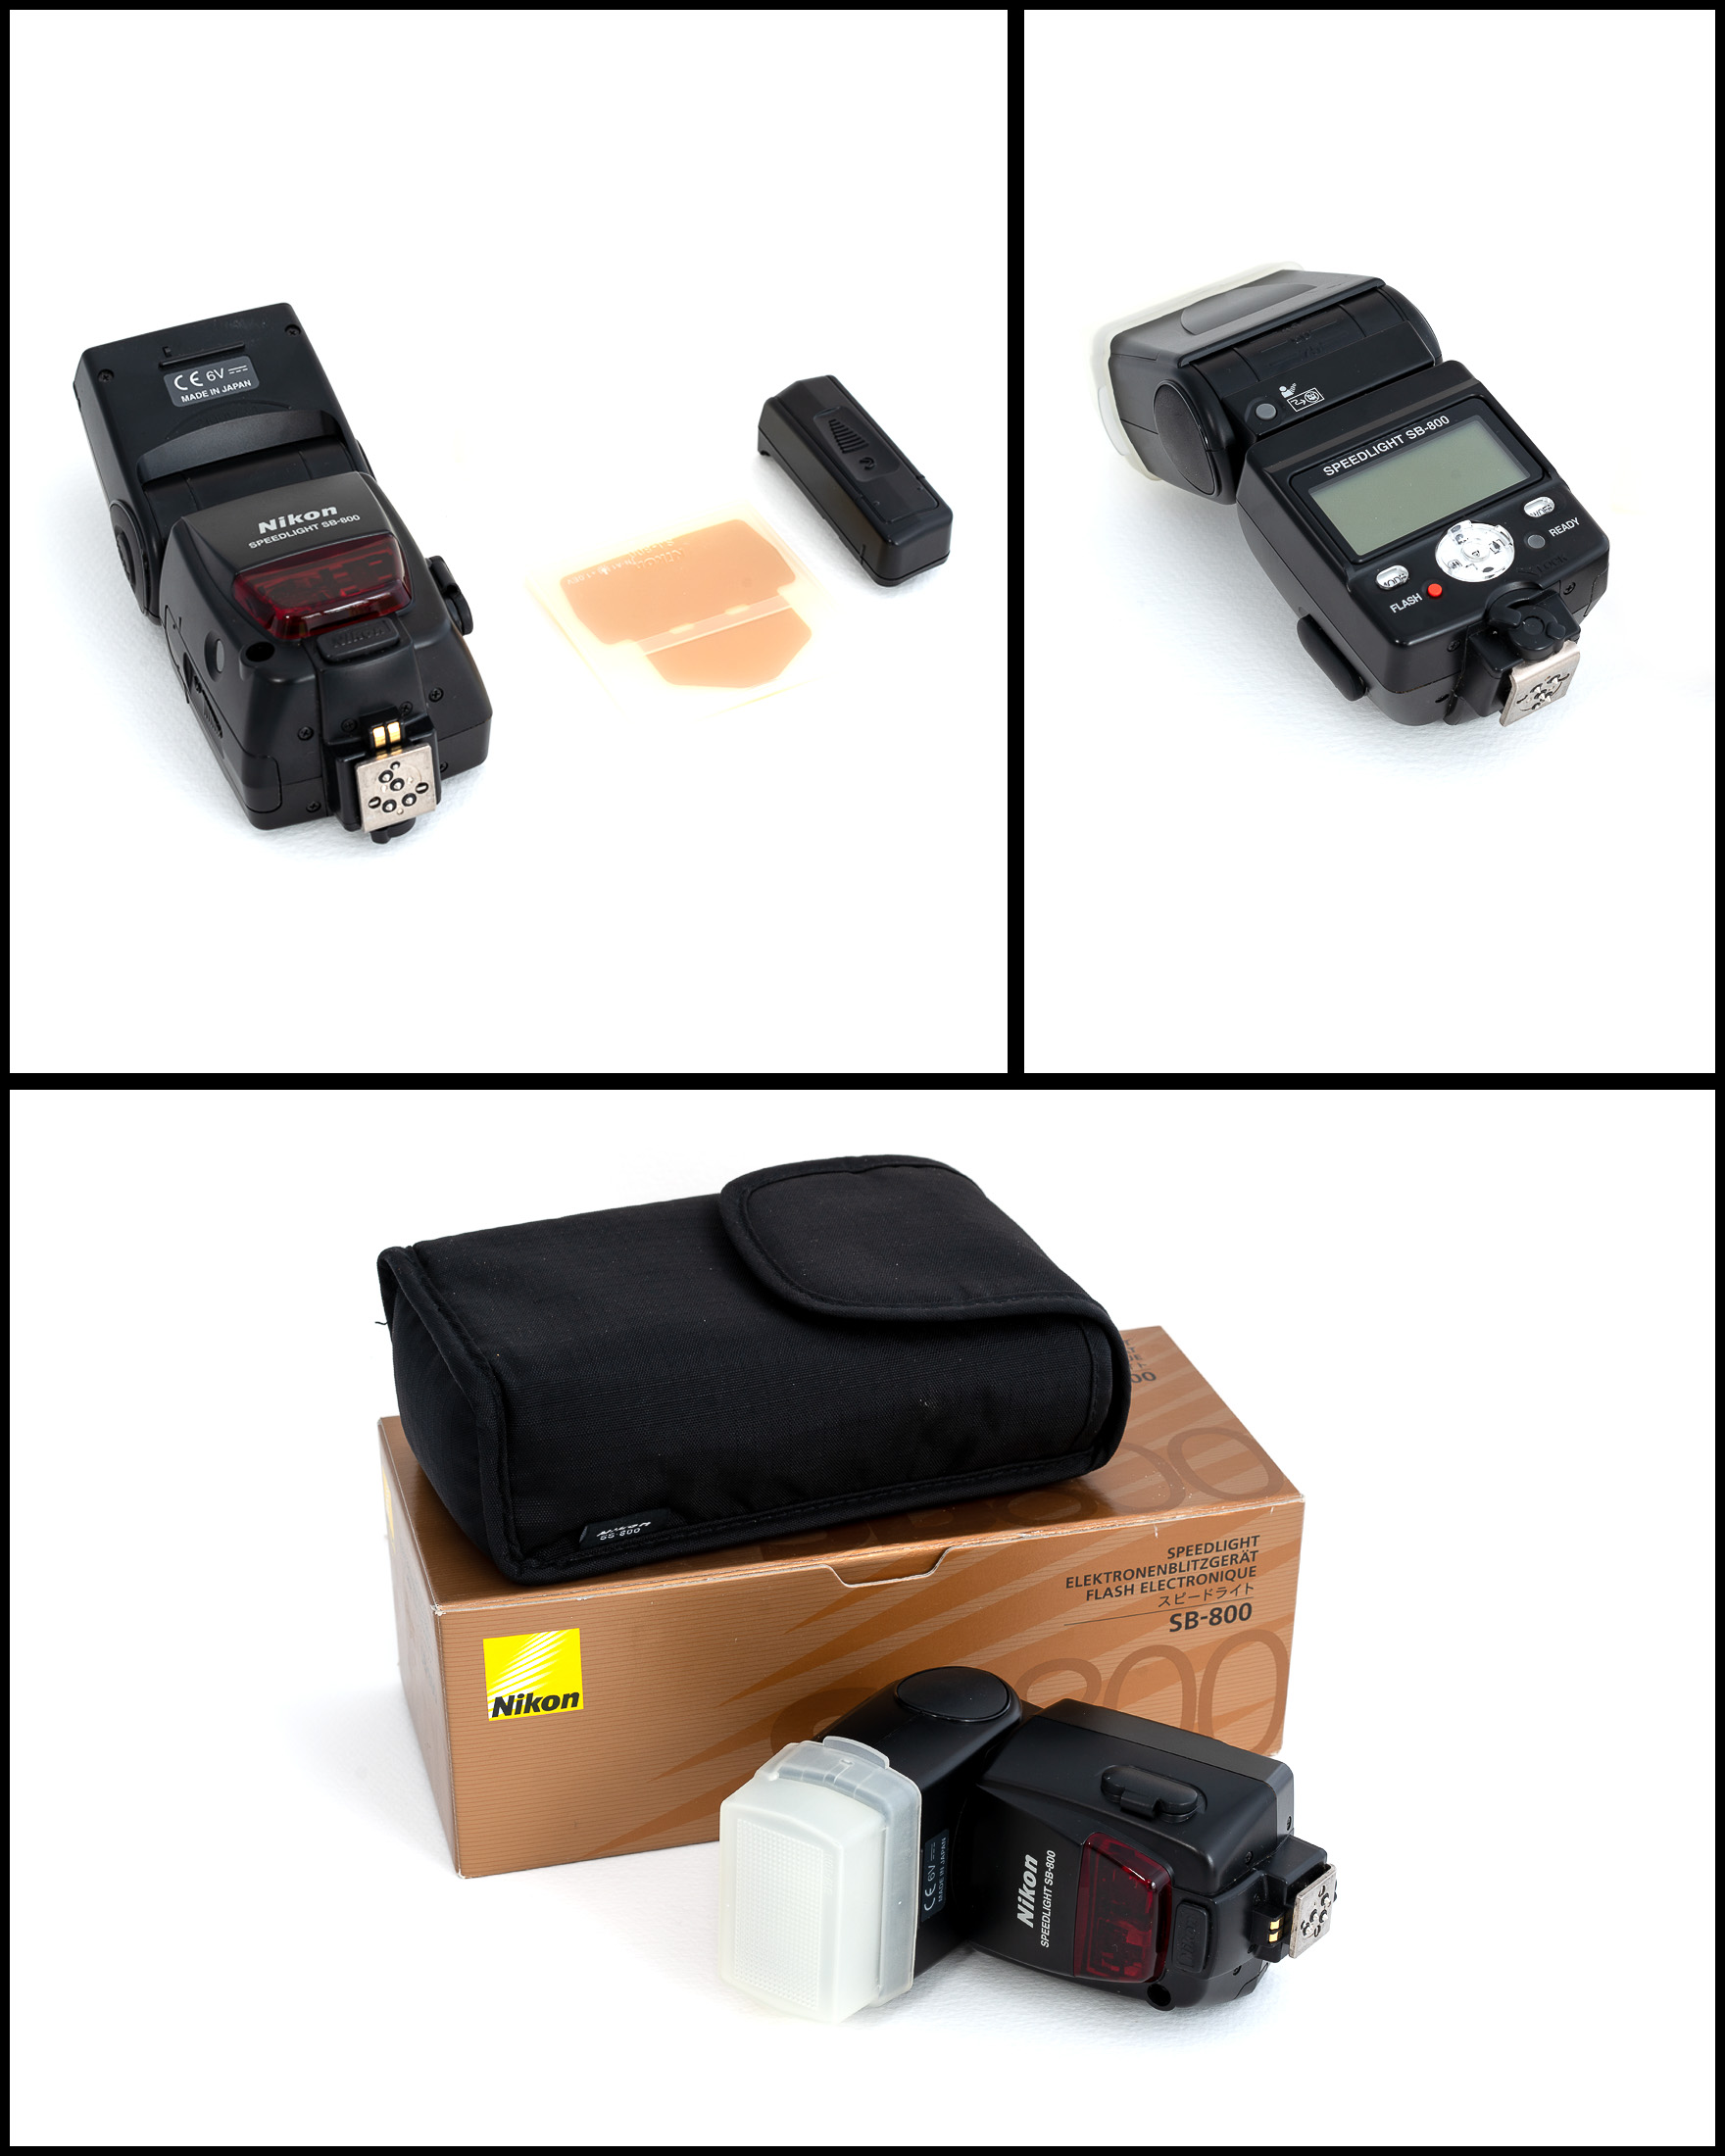 Nikon SB-800 Speedlight    £125   In excellent condition comes with diffuser, gels, 5th battery adaptor, pouch and original box